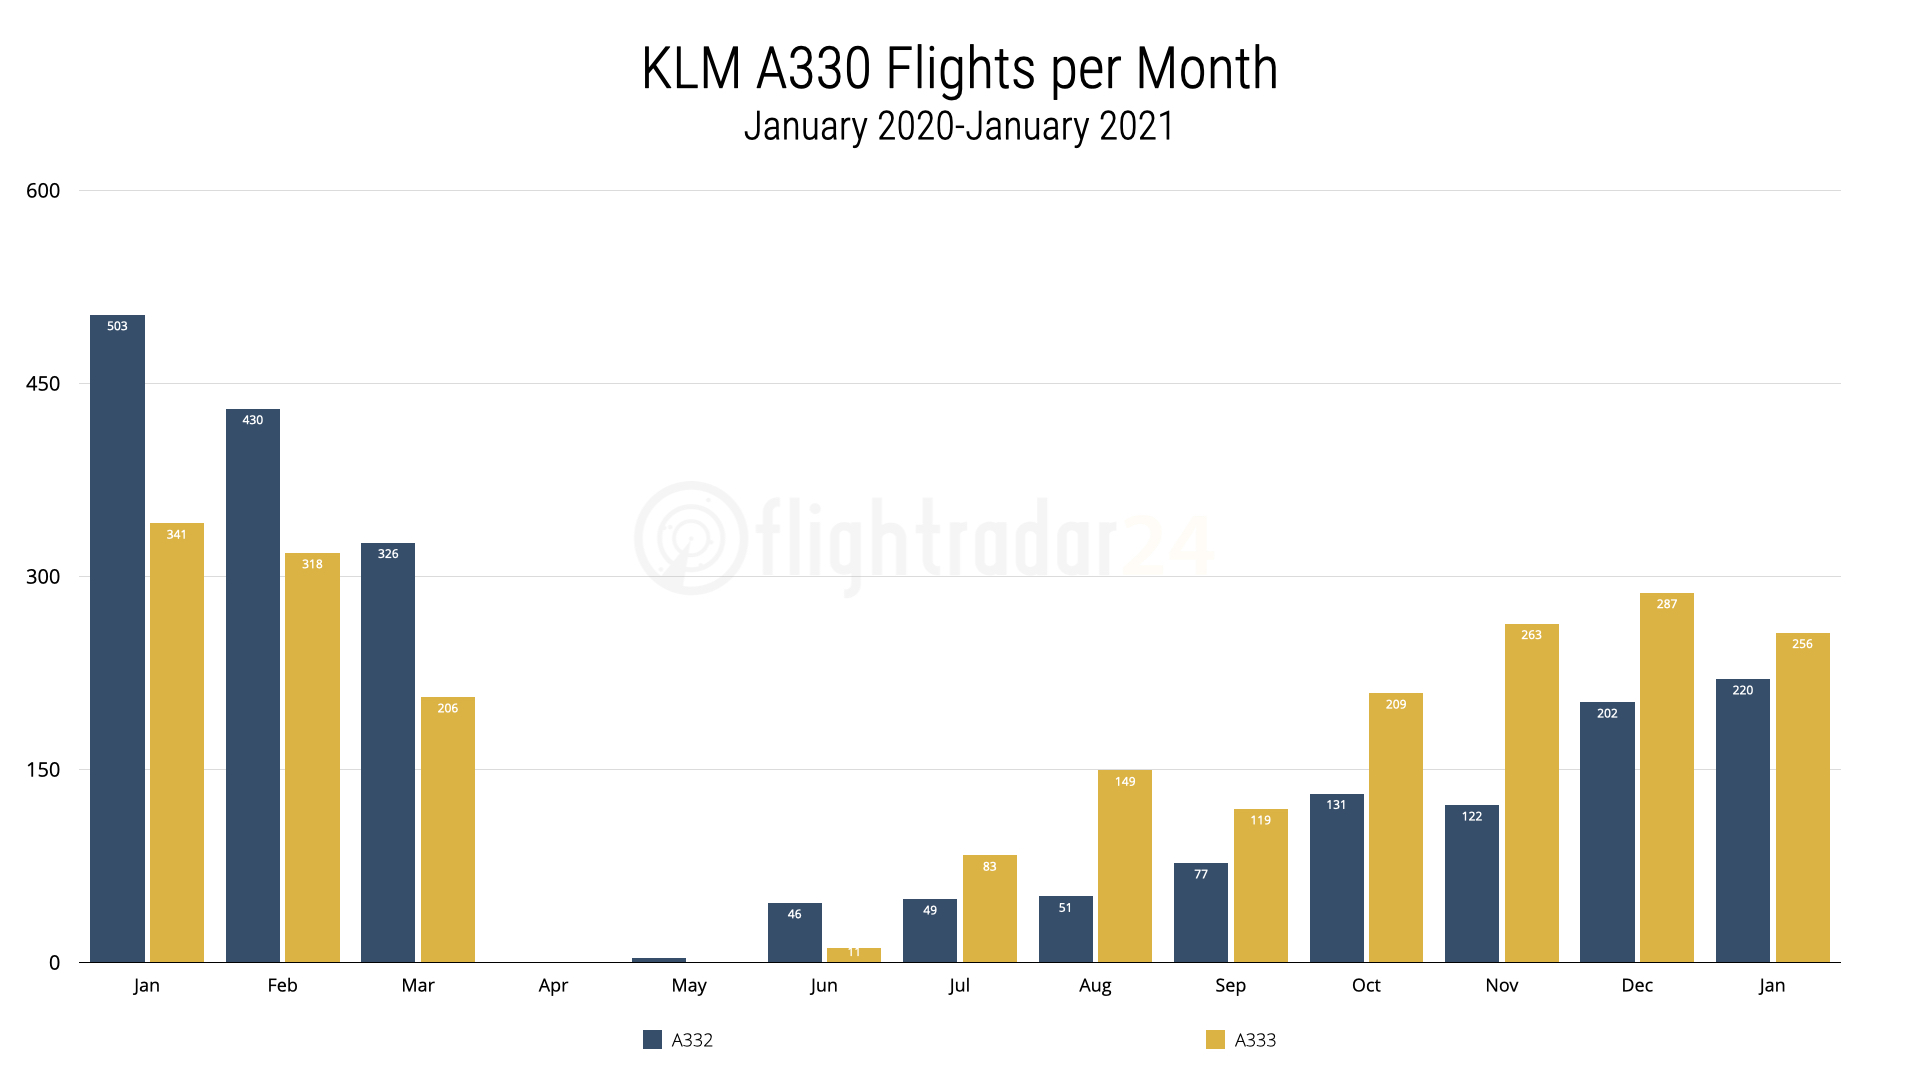 KLM A330 flights per month from January 2020 to January 2021